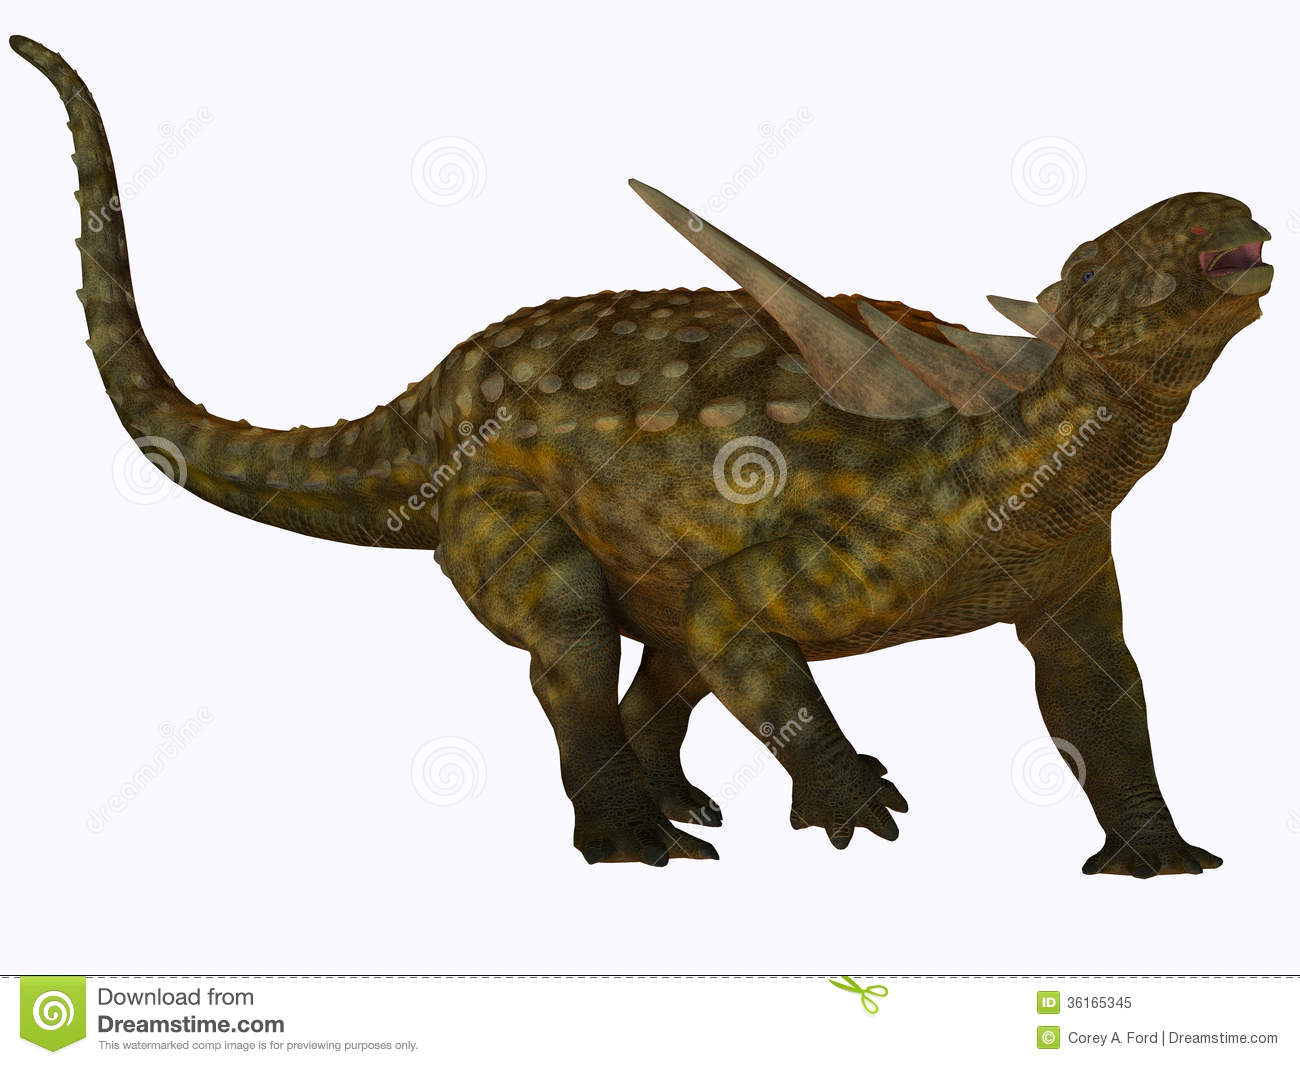 Sauropelta was a herbivore dinosaur that lived in river floodplains of    Sauropelta